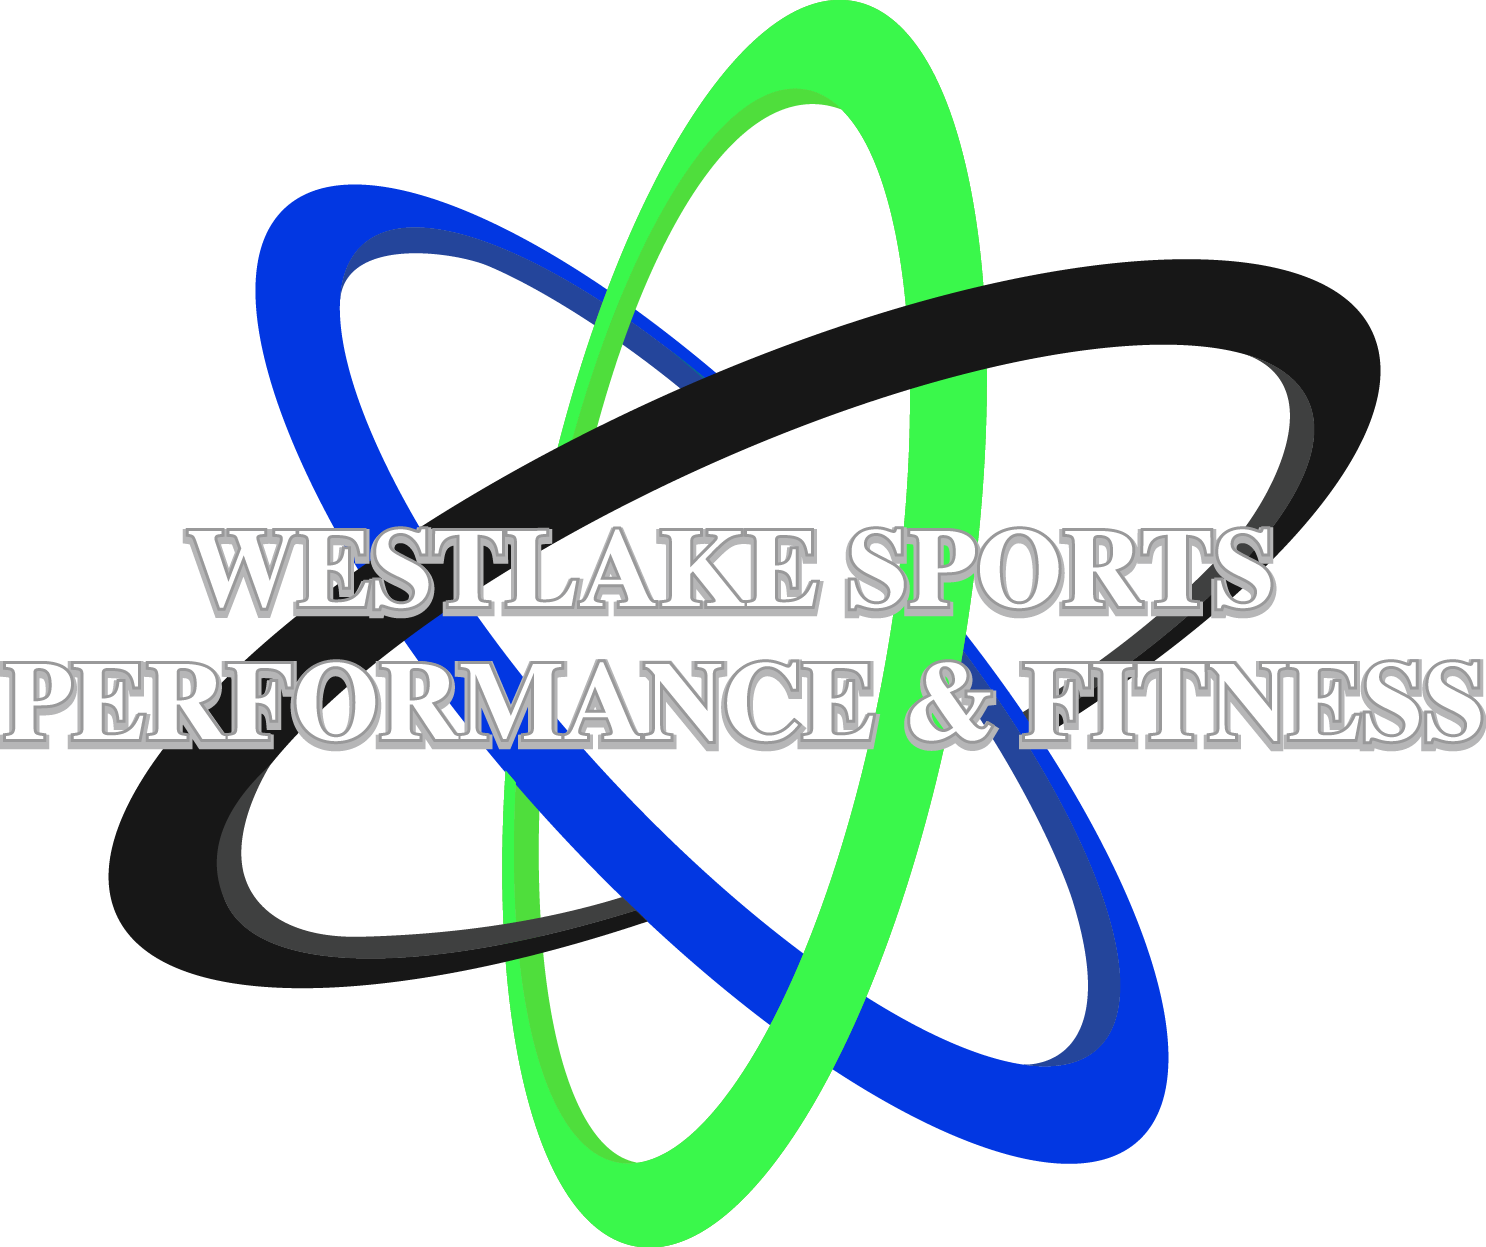 Nutrition clipart sport performance. Westlake sports fitness formatw